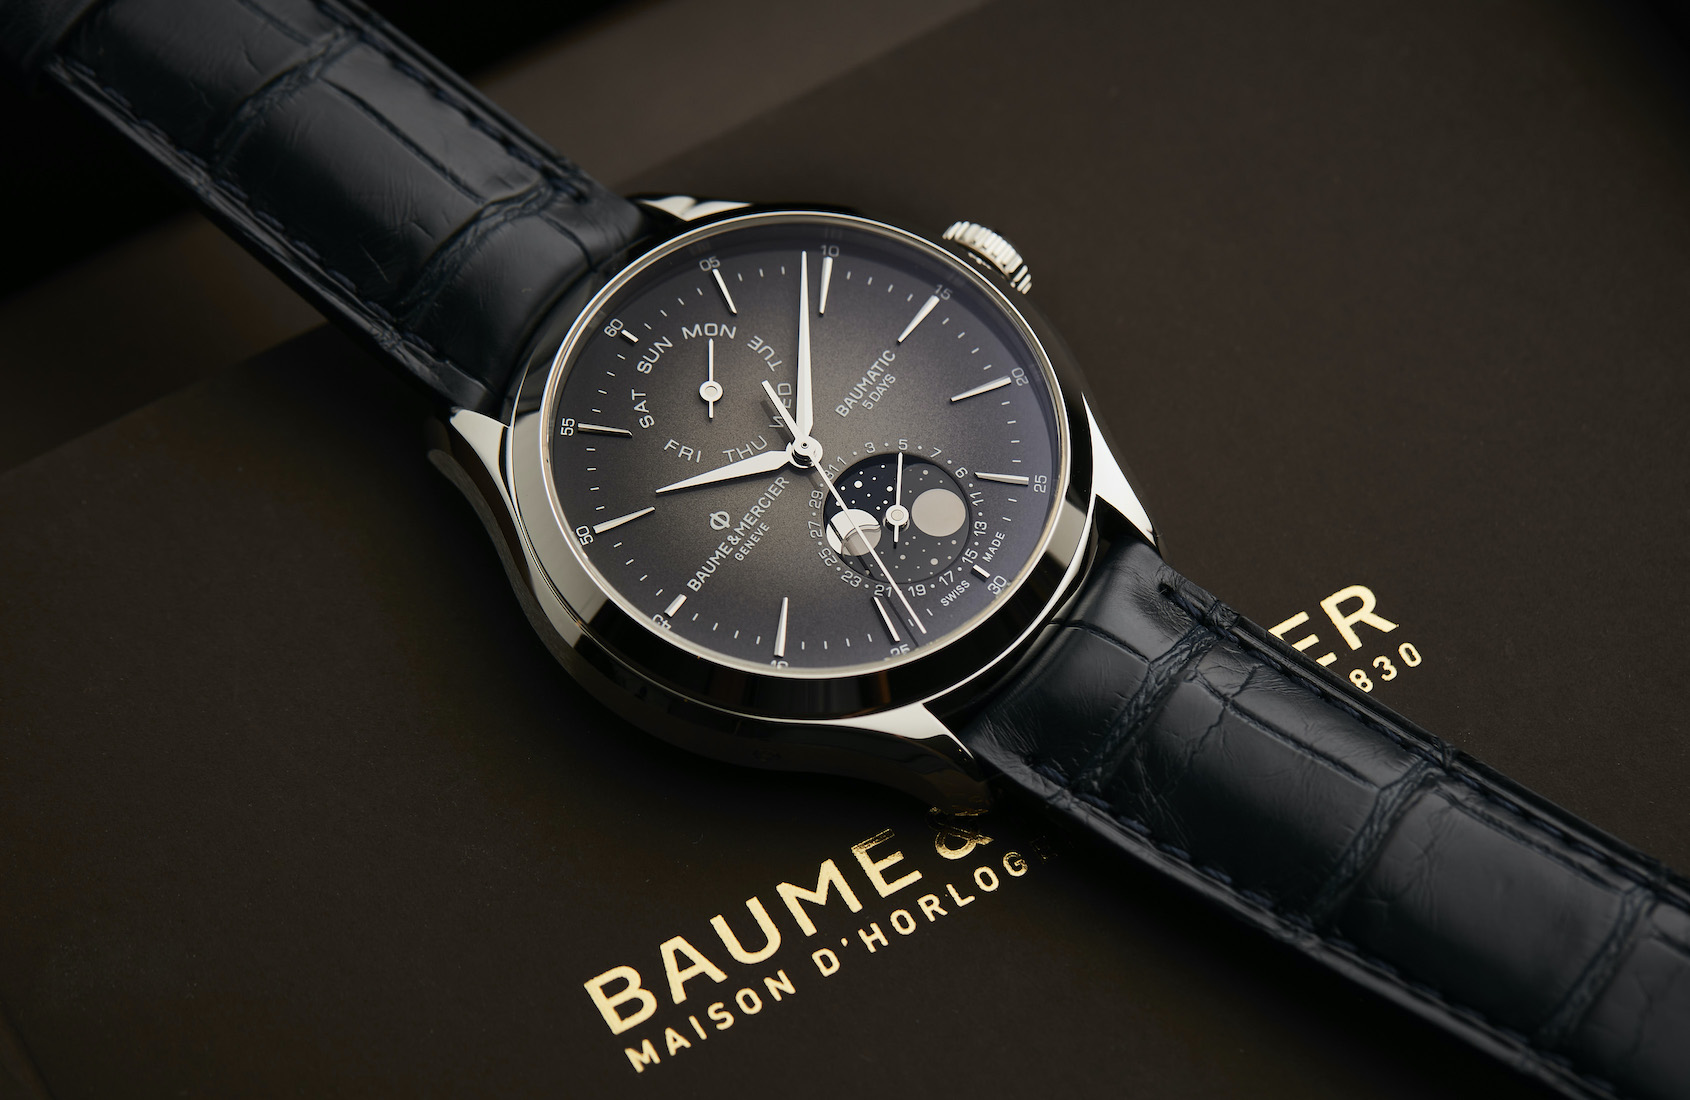 Baume & Mercier Clifton Baumatic Automatic Day Date Moon Phase